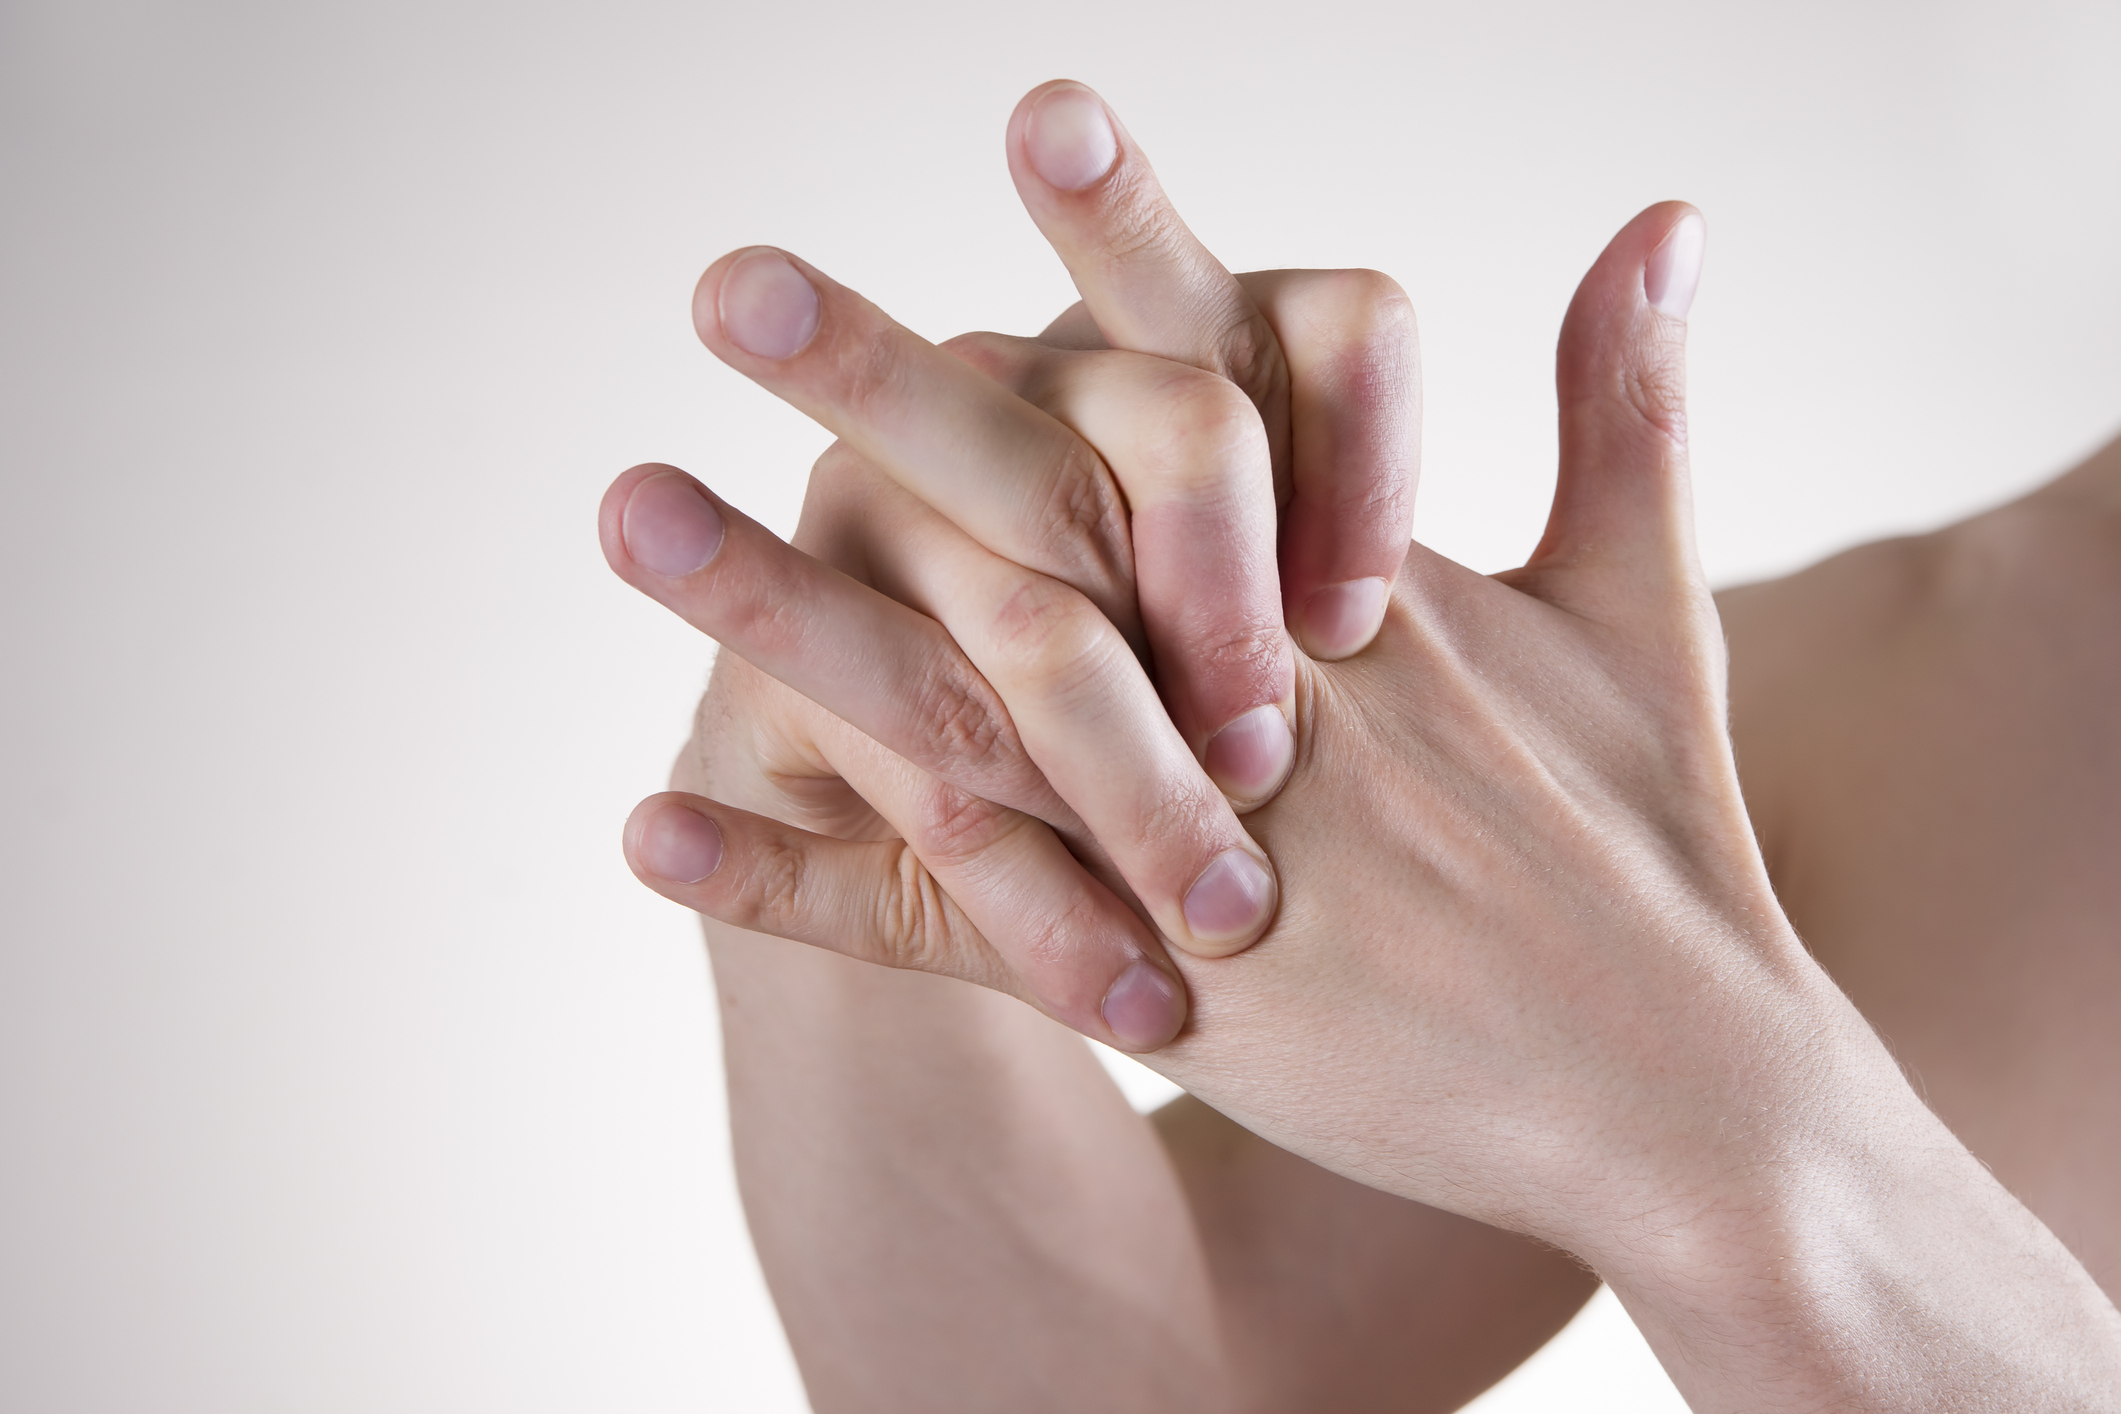 Knuckle cracking: Annoying and harmful, or just annoying? - Harvard ...